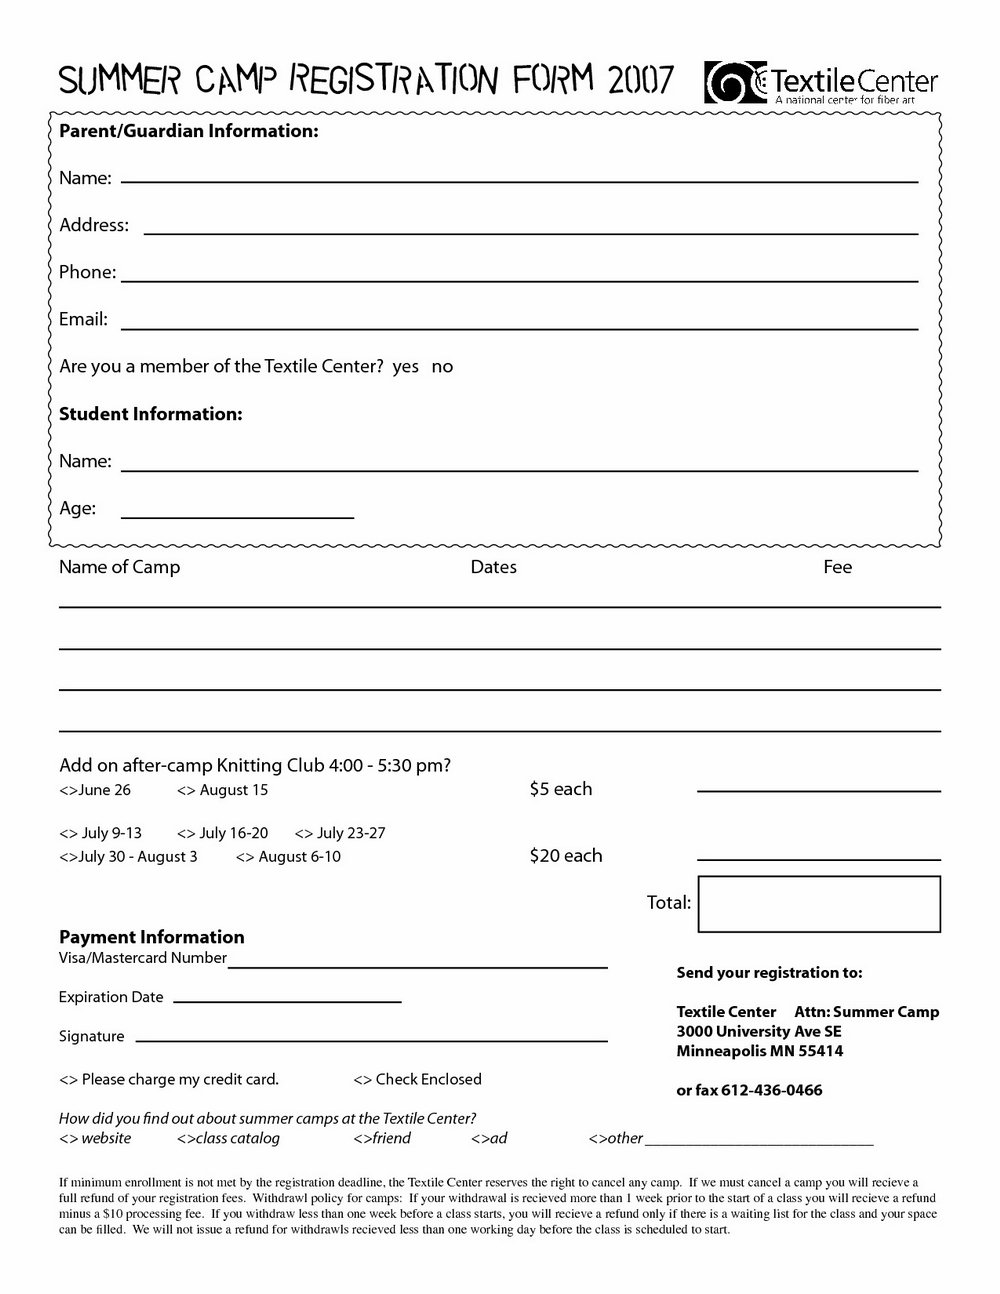 Summer Camp Registration Form Template Word